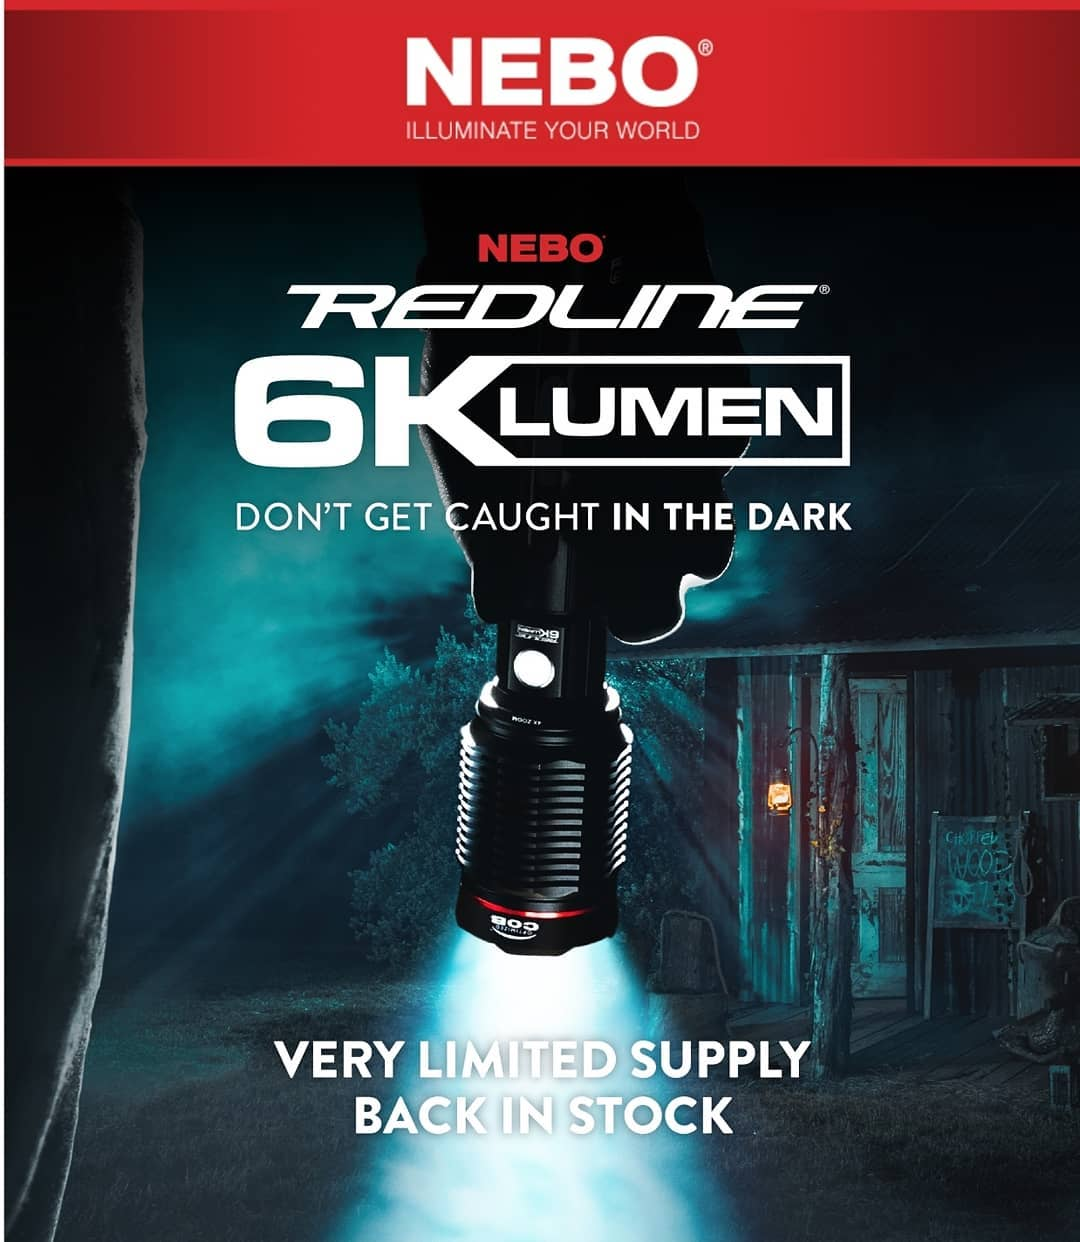 MSRP $99.99 Preorder today for only $84.95  The hot selling REDLINE 6K is a powerful, waterproof (IP67), rechargeable, 6,000 lumen flashlight. It features a 4x adjustable zoom and New Optimized C·O·B™ housed inside of an aircraft-grade anodized aluminum body with 4 light modes.  The REDLINE 6K also features a power bank and full-sized USB port to charge your mobile phone and other USB-powered devices.